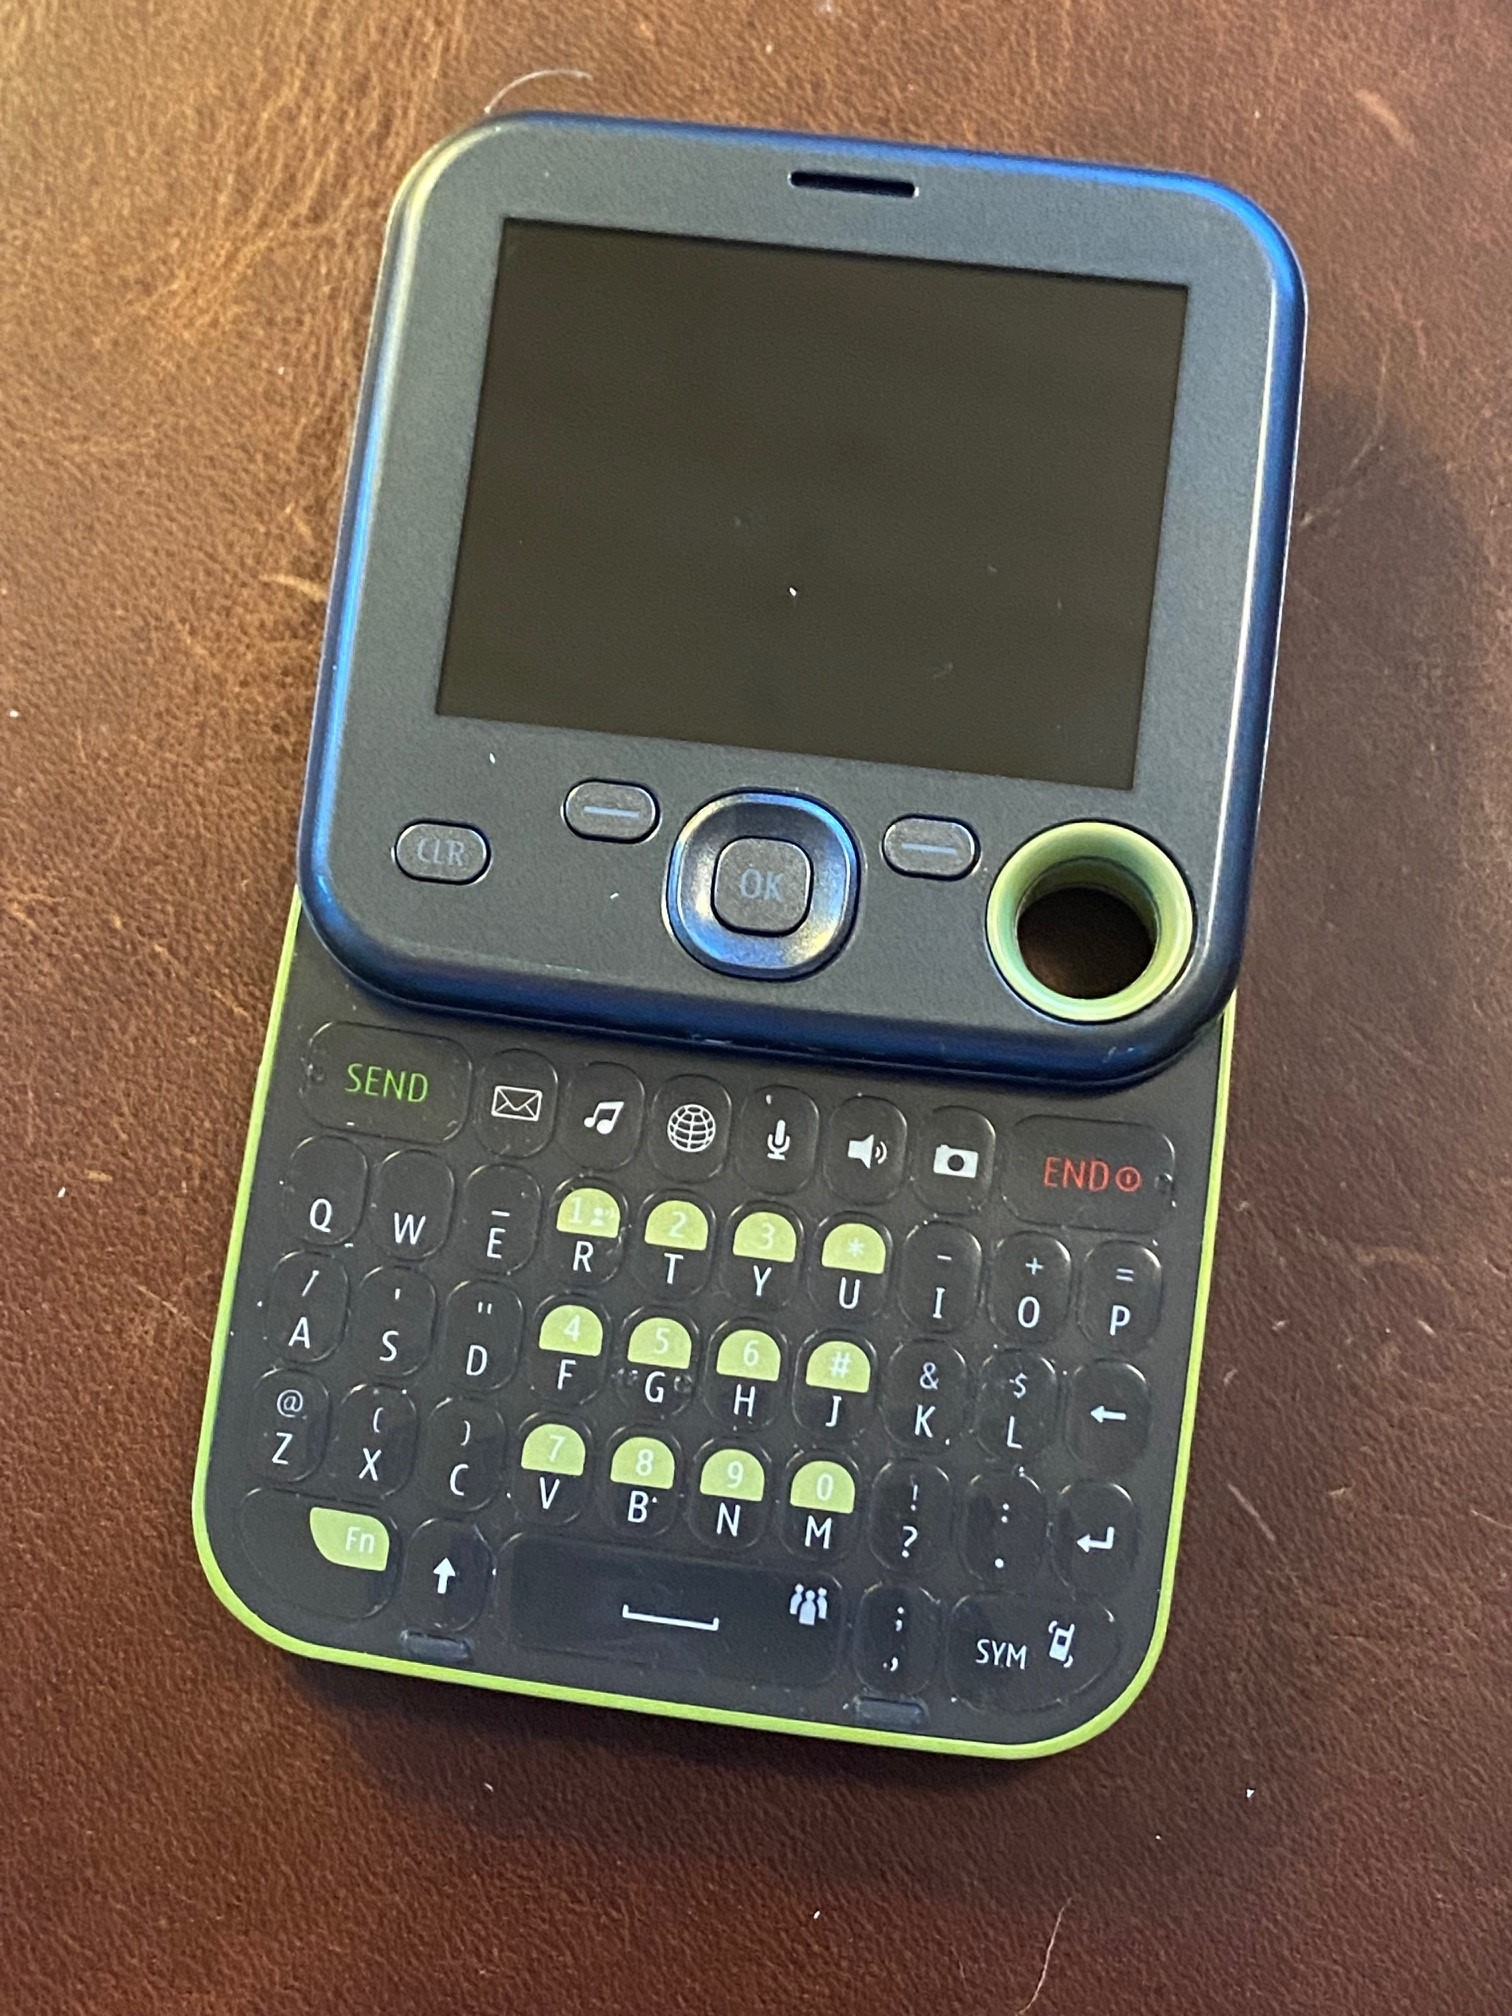 Nokia Twist 7505 that never made it to the shelves